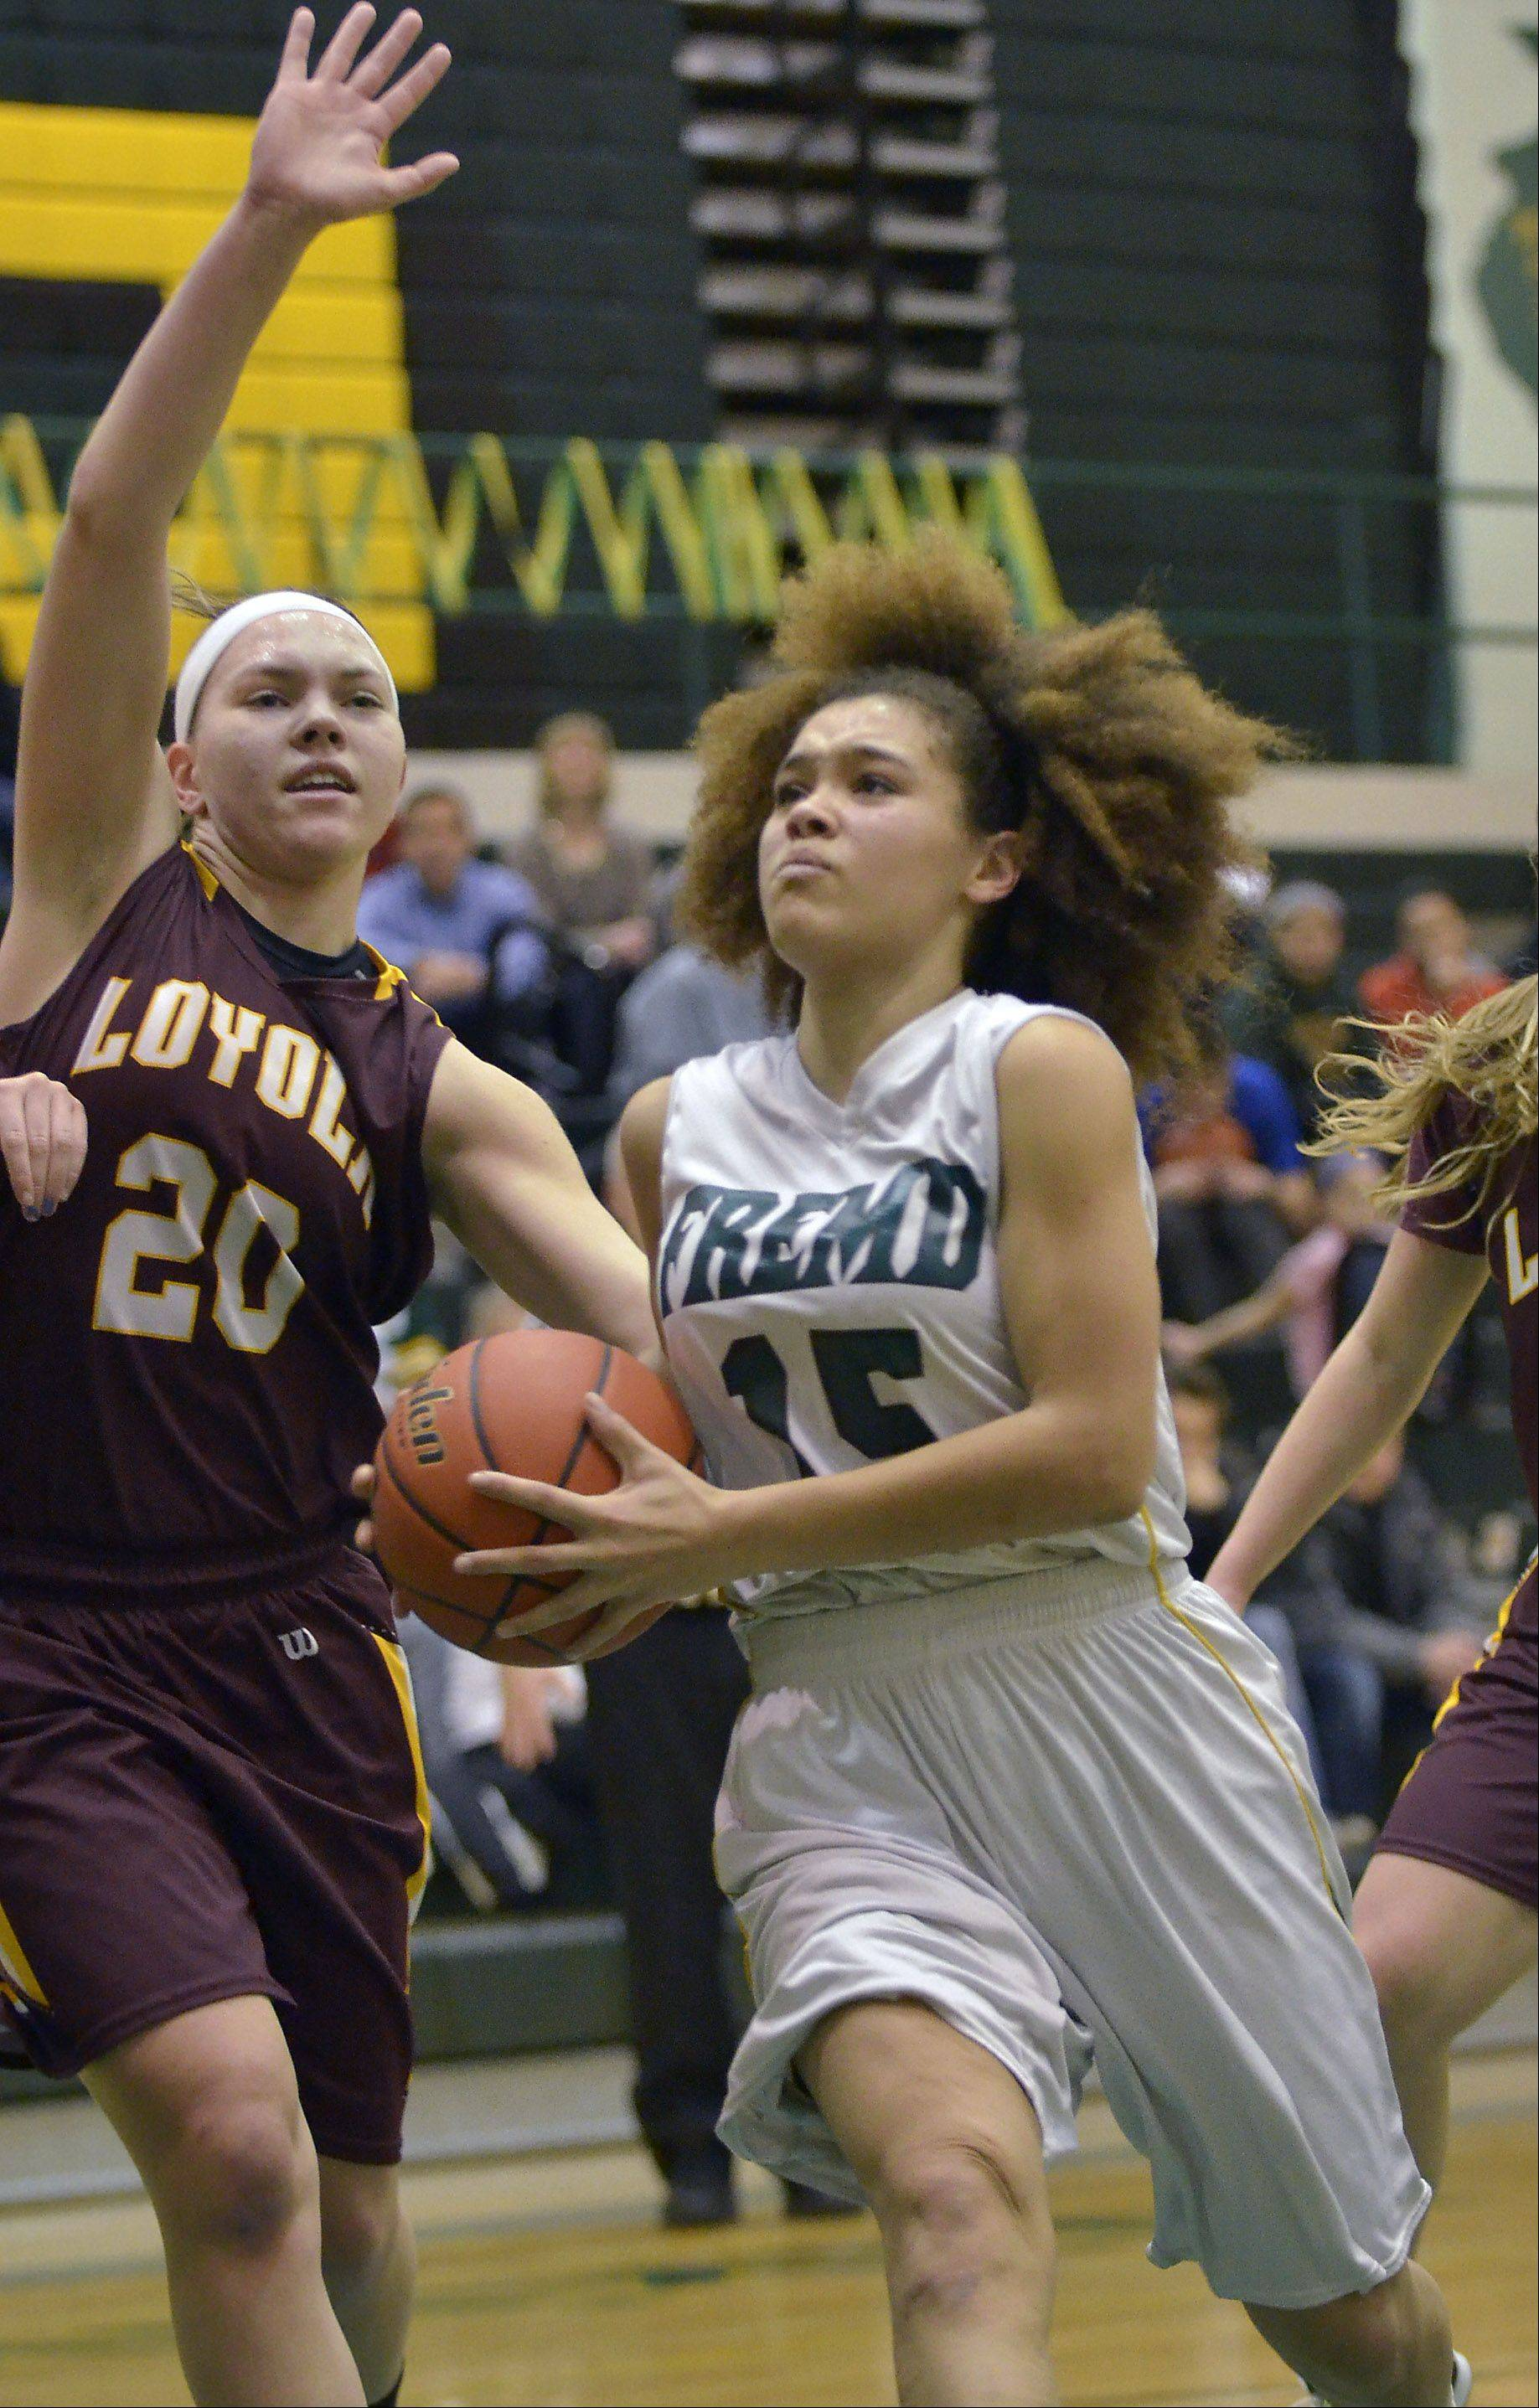 Fremd's Bernie Williams puts up a shot against Loyola's Egan Berne .